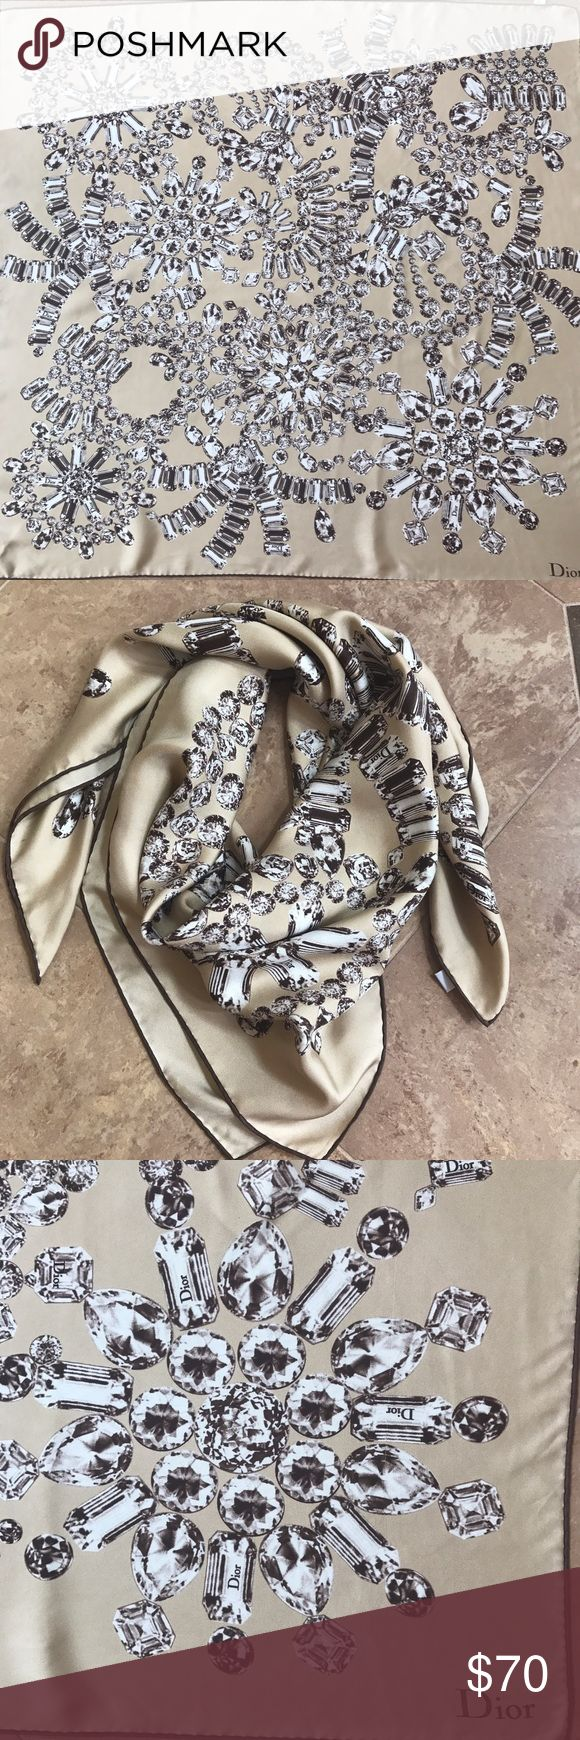 Authentic Dior Silk Scarf Authentic Christian Dior Silk Scarf. 100% silk. Diamond gemstone print, brown piping on borders. Light beige with white and brown illustration. Excellent condition. Christian Dior Accessories Scarves & Wraps